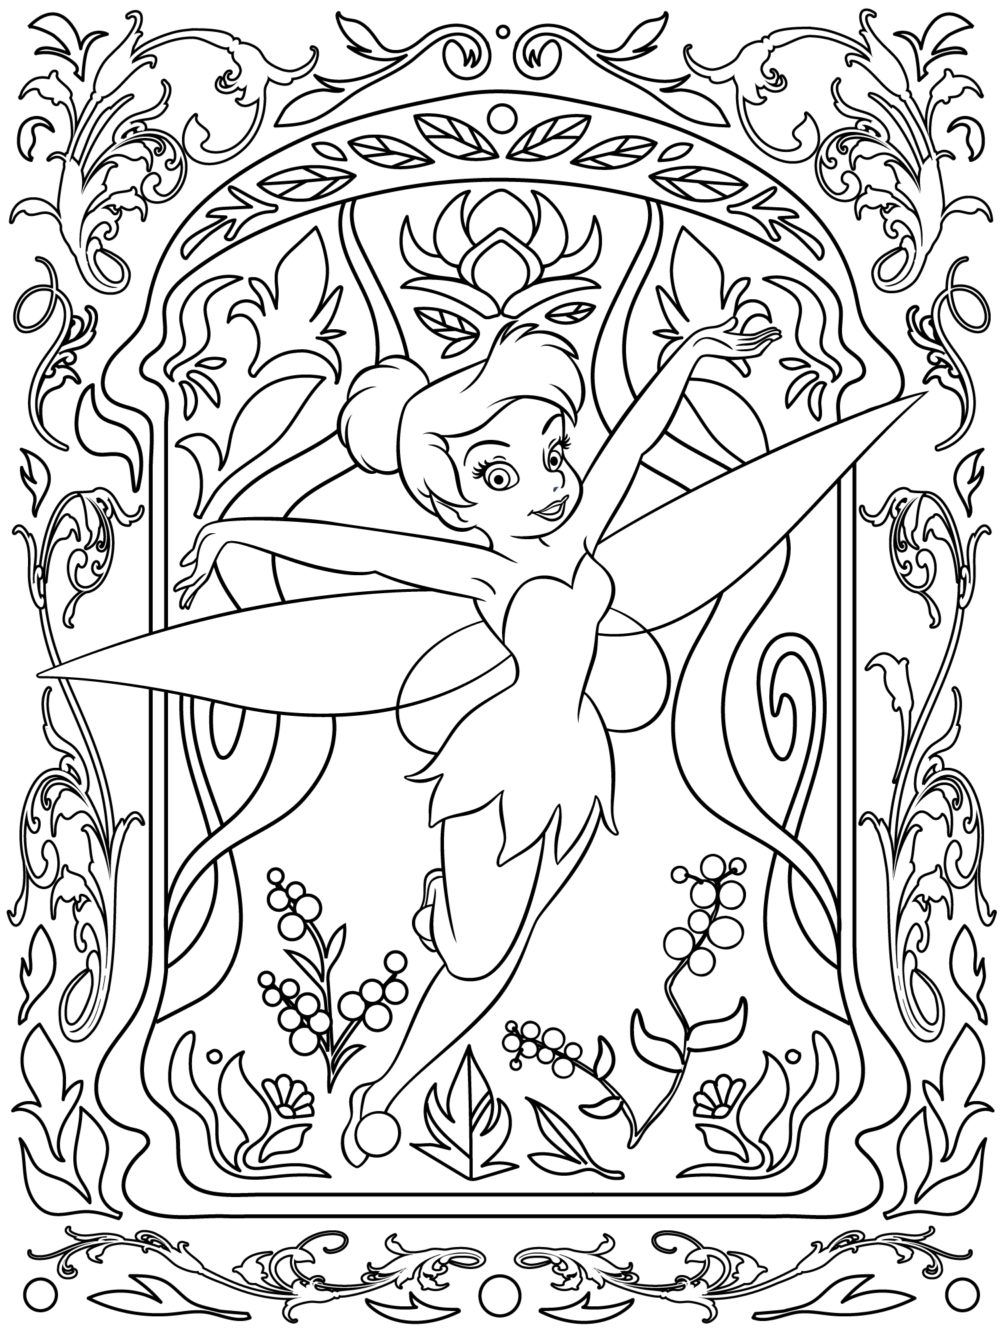 Celebrate National Coloring Book Day With | Disney ...